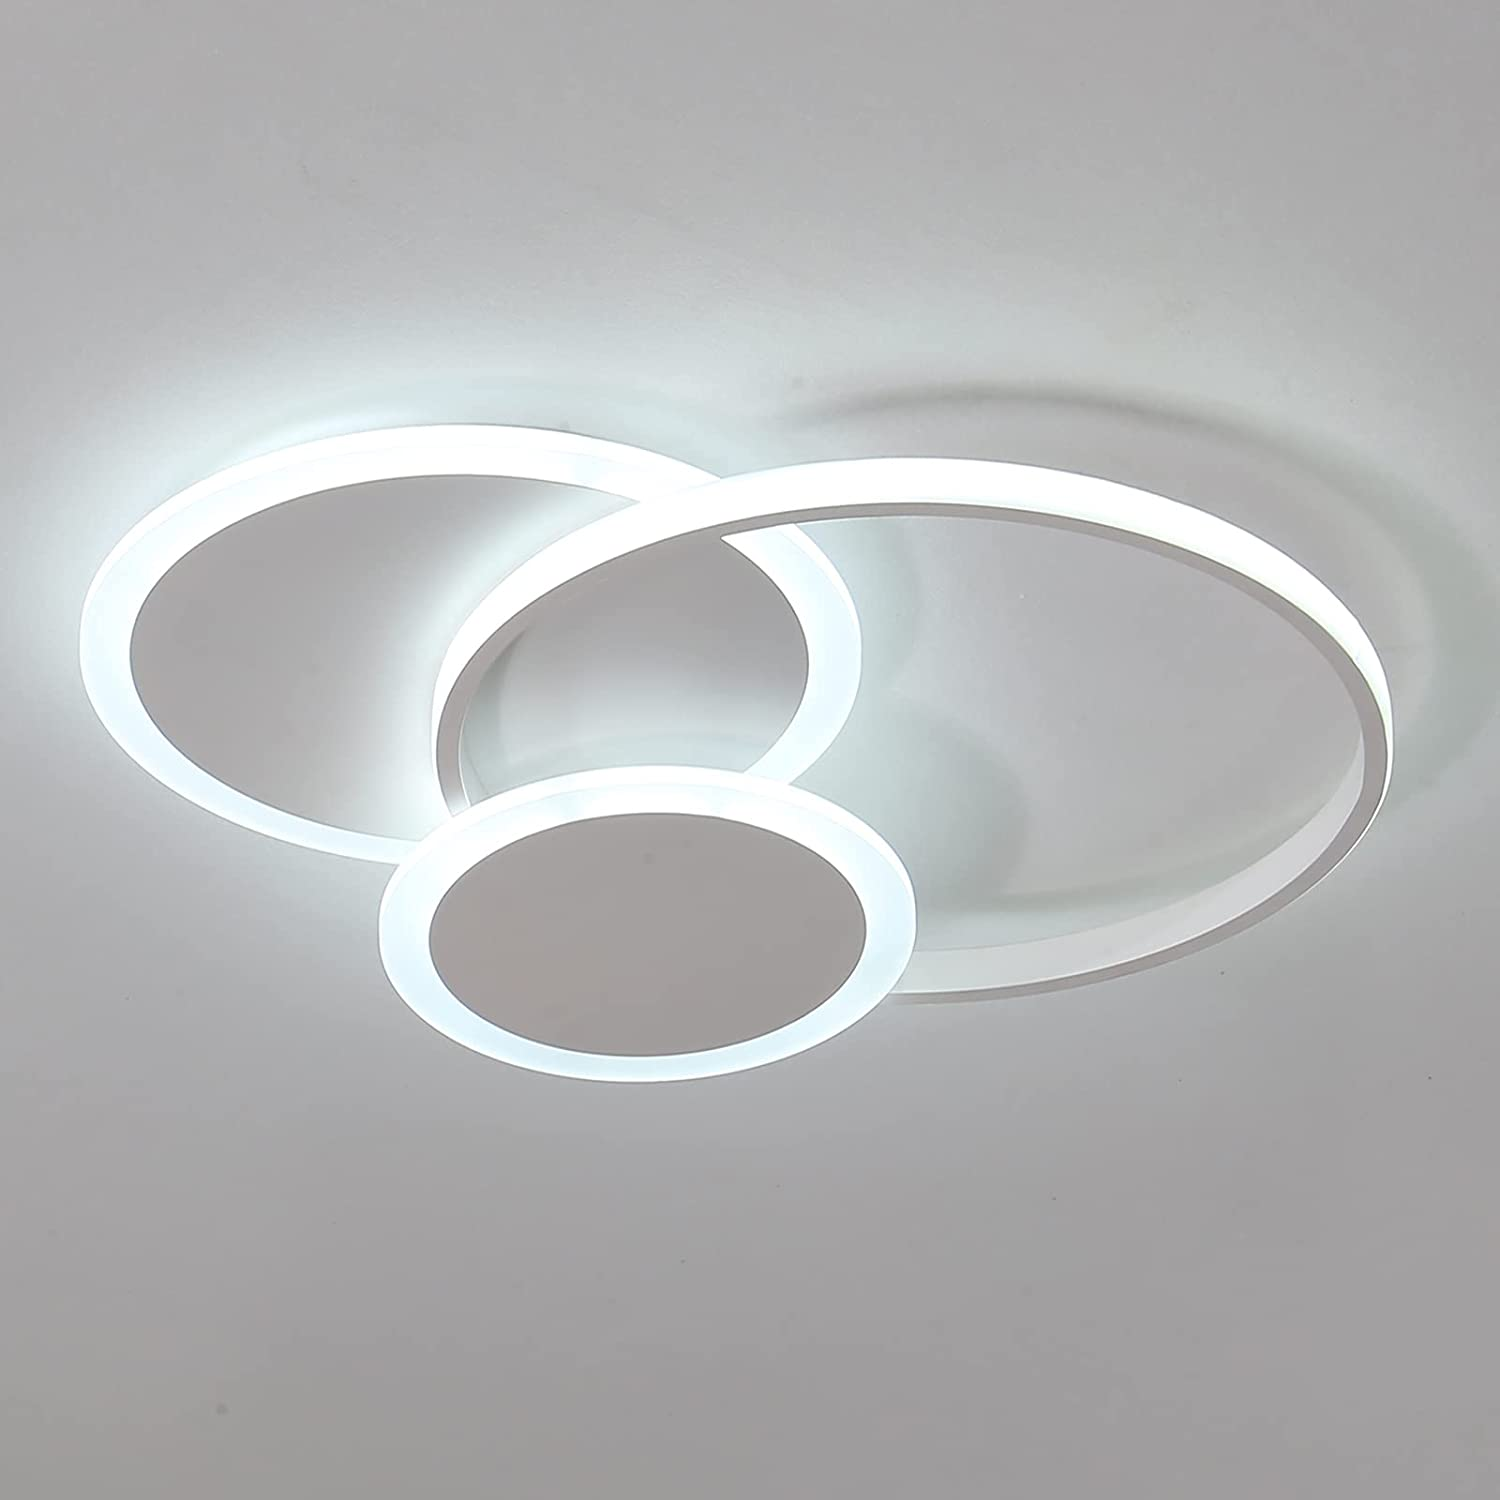 Qcyuui 32W Flush Mount Lighting Fixture, LED Ceiling Light with Acrylic Lampshade, Circle Close to Ceiling Lamp for Living Room Dining Room Bedroom Kitchen, 6500K/Cool White